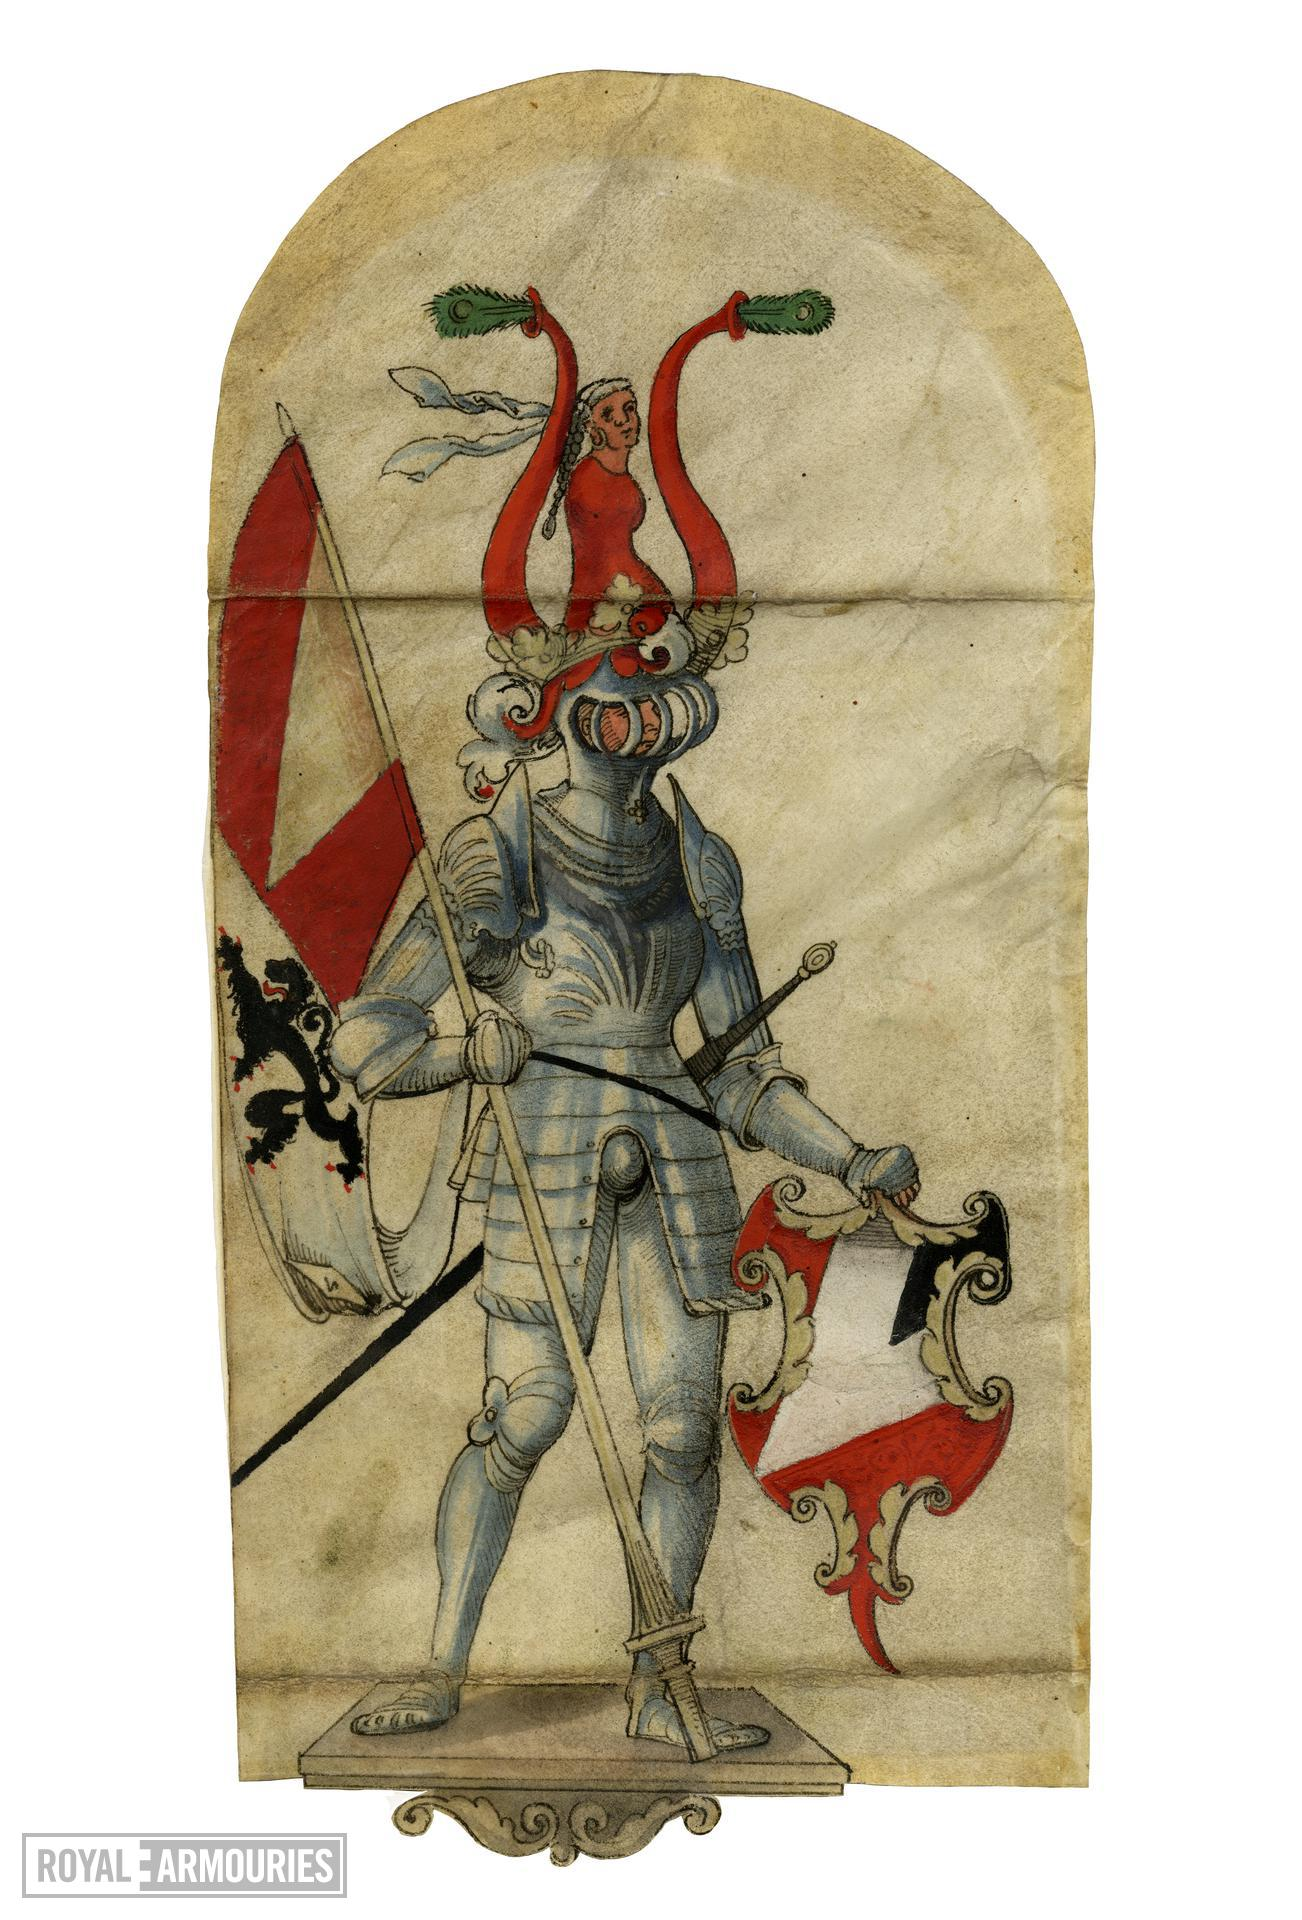 Heraldic drawing of man in armour